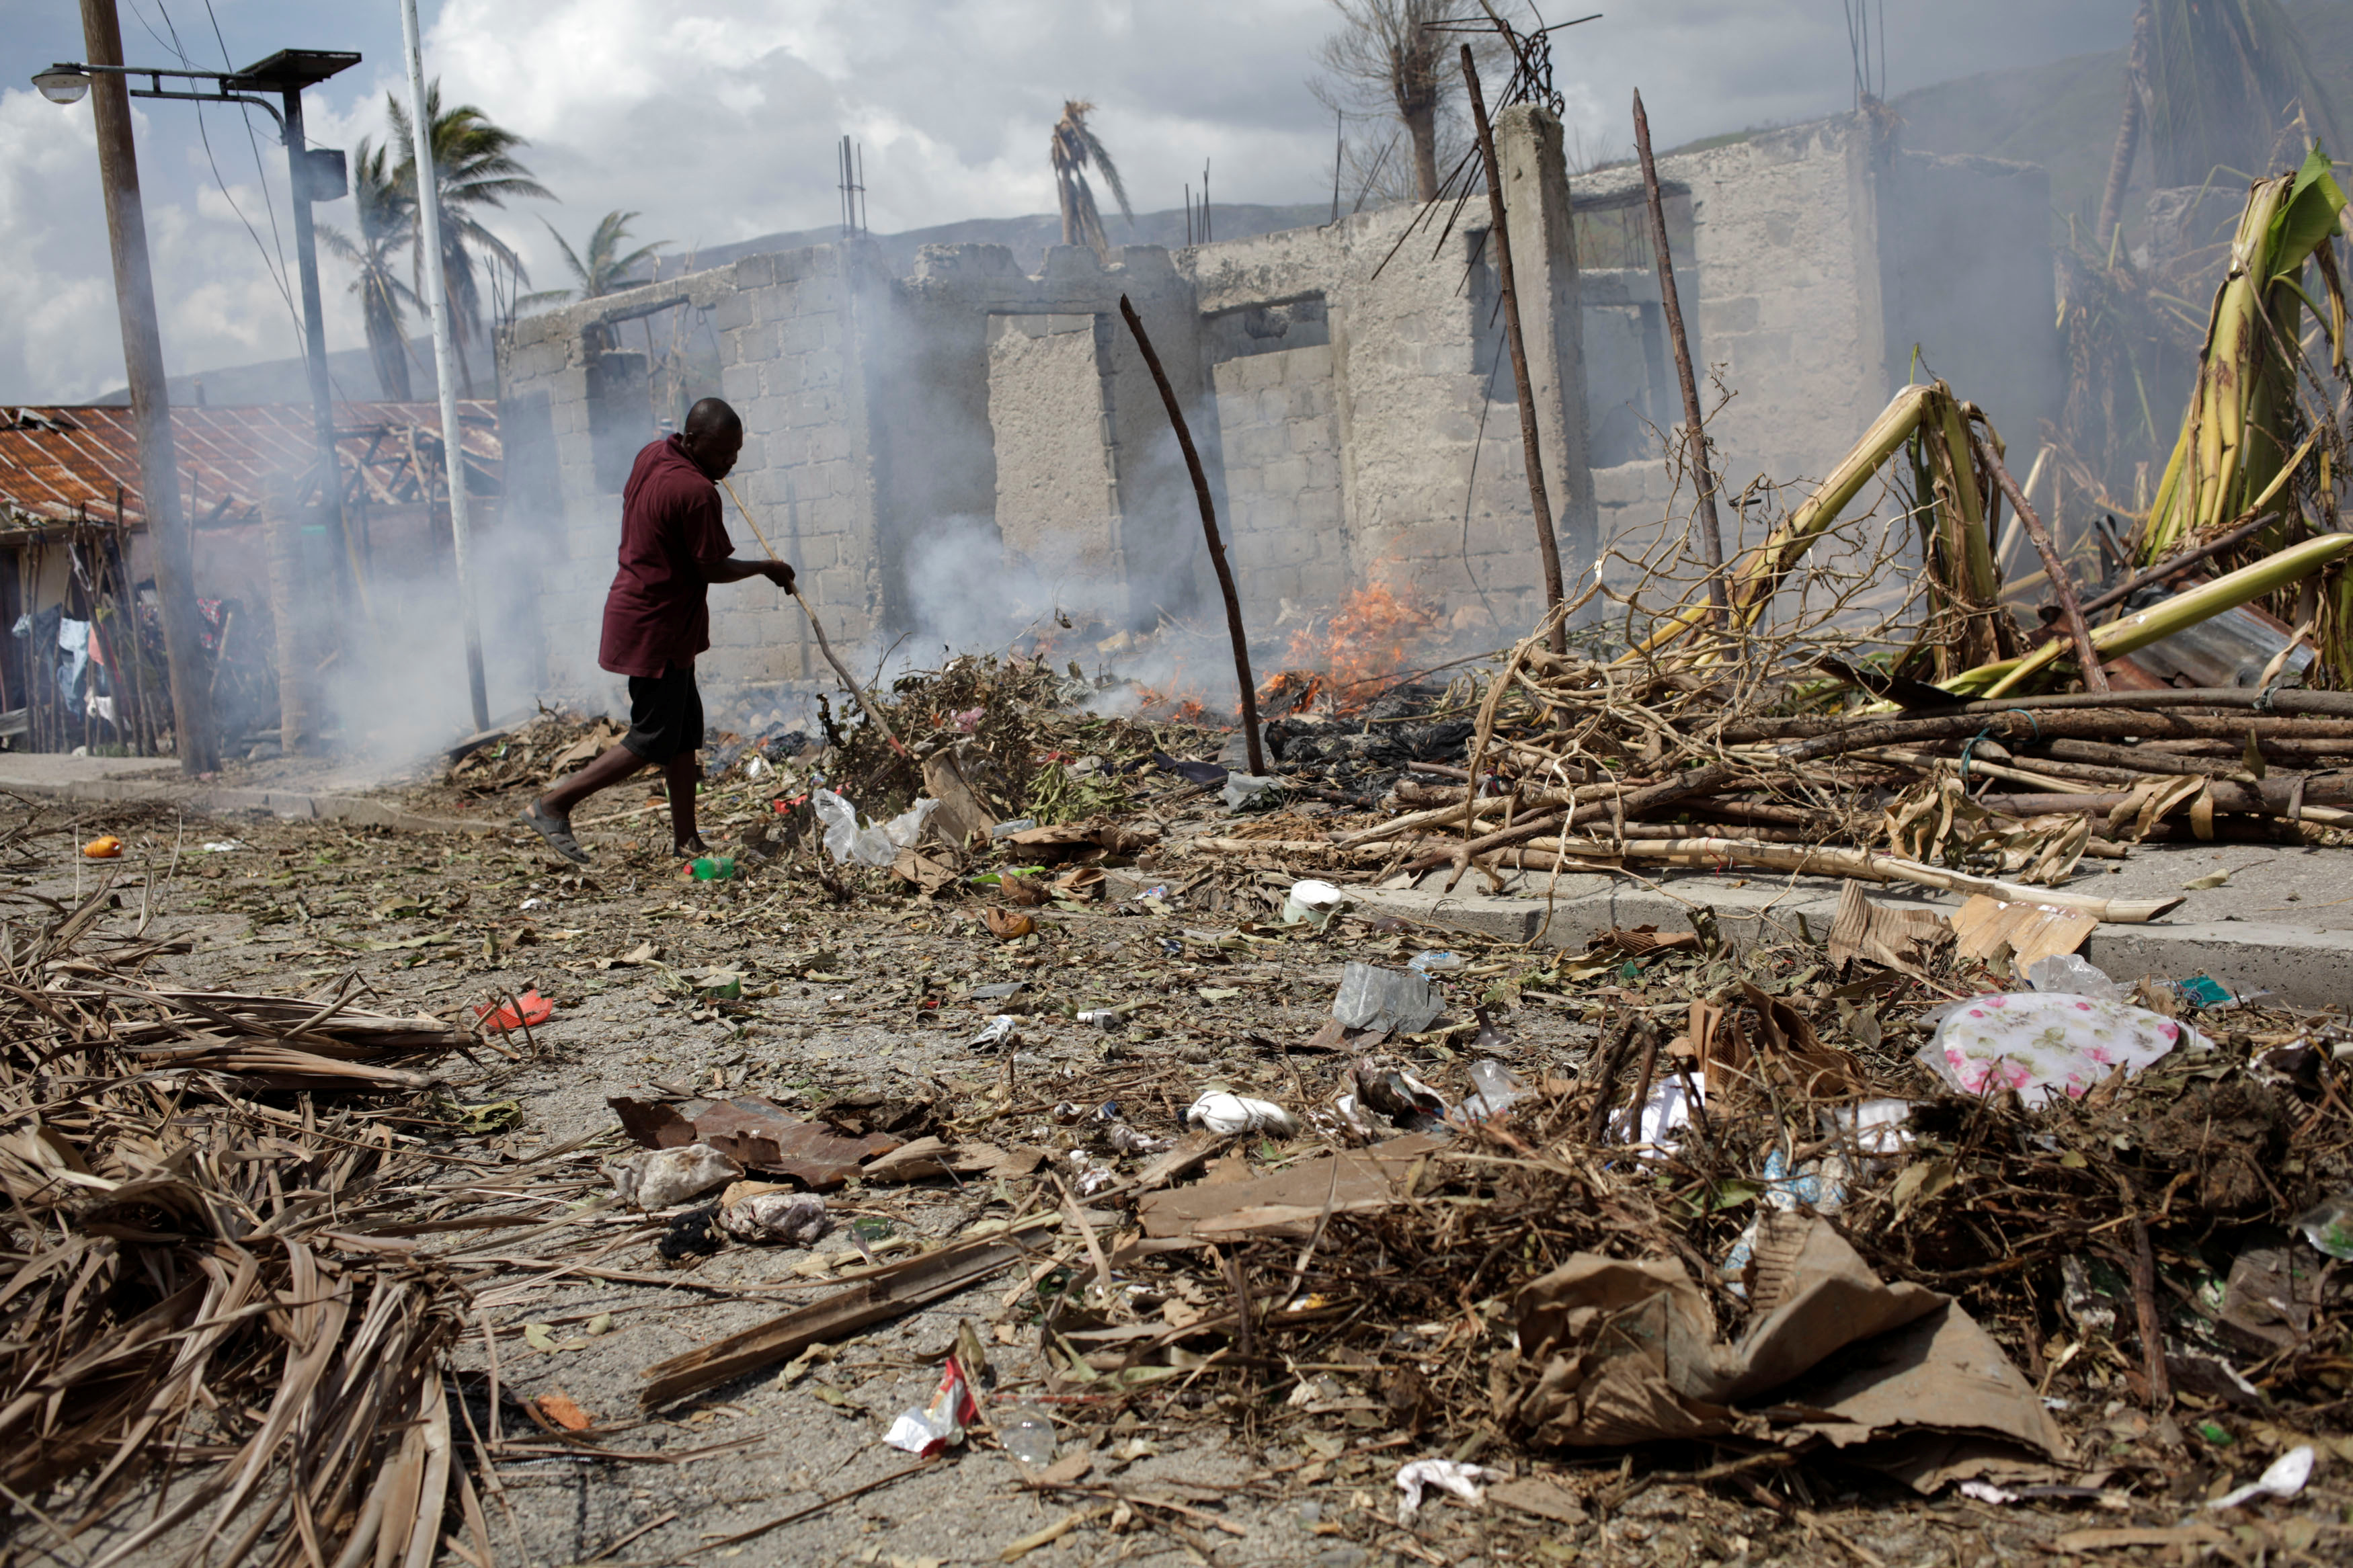 A man burns branches from fallen trees in Les Anglais in southwestern Haiti. Photo by Andres Martinez Casares/Reuters